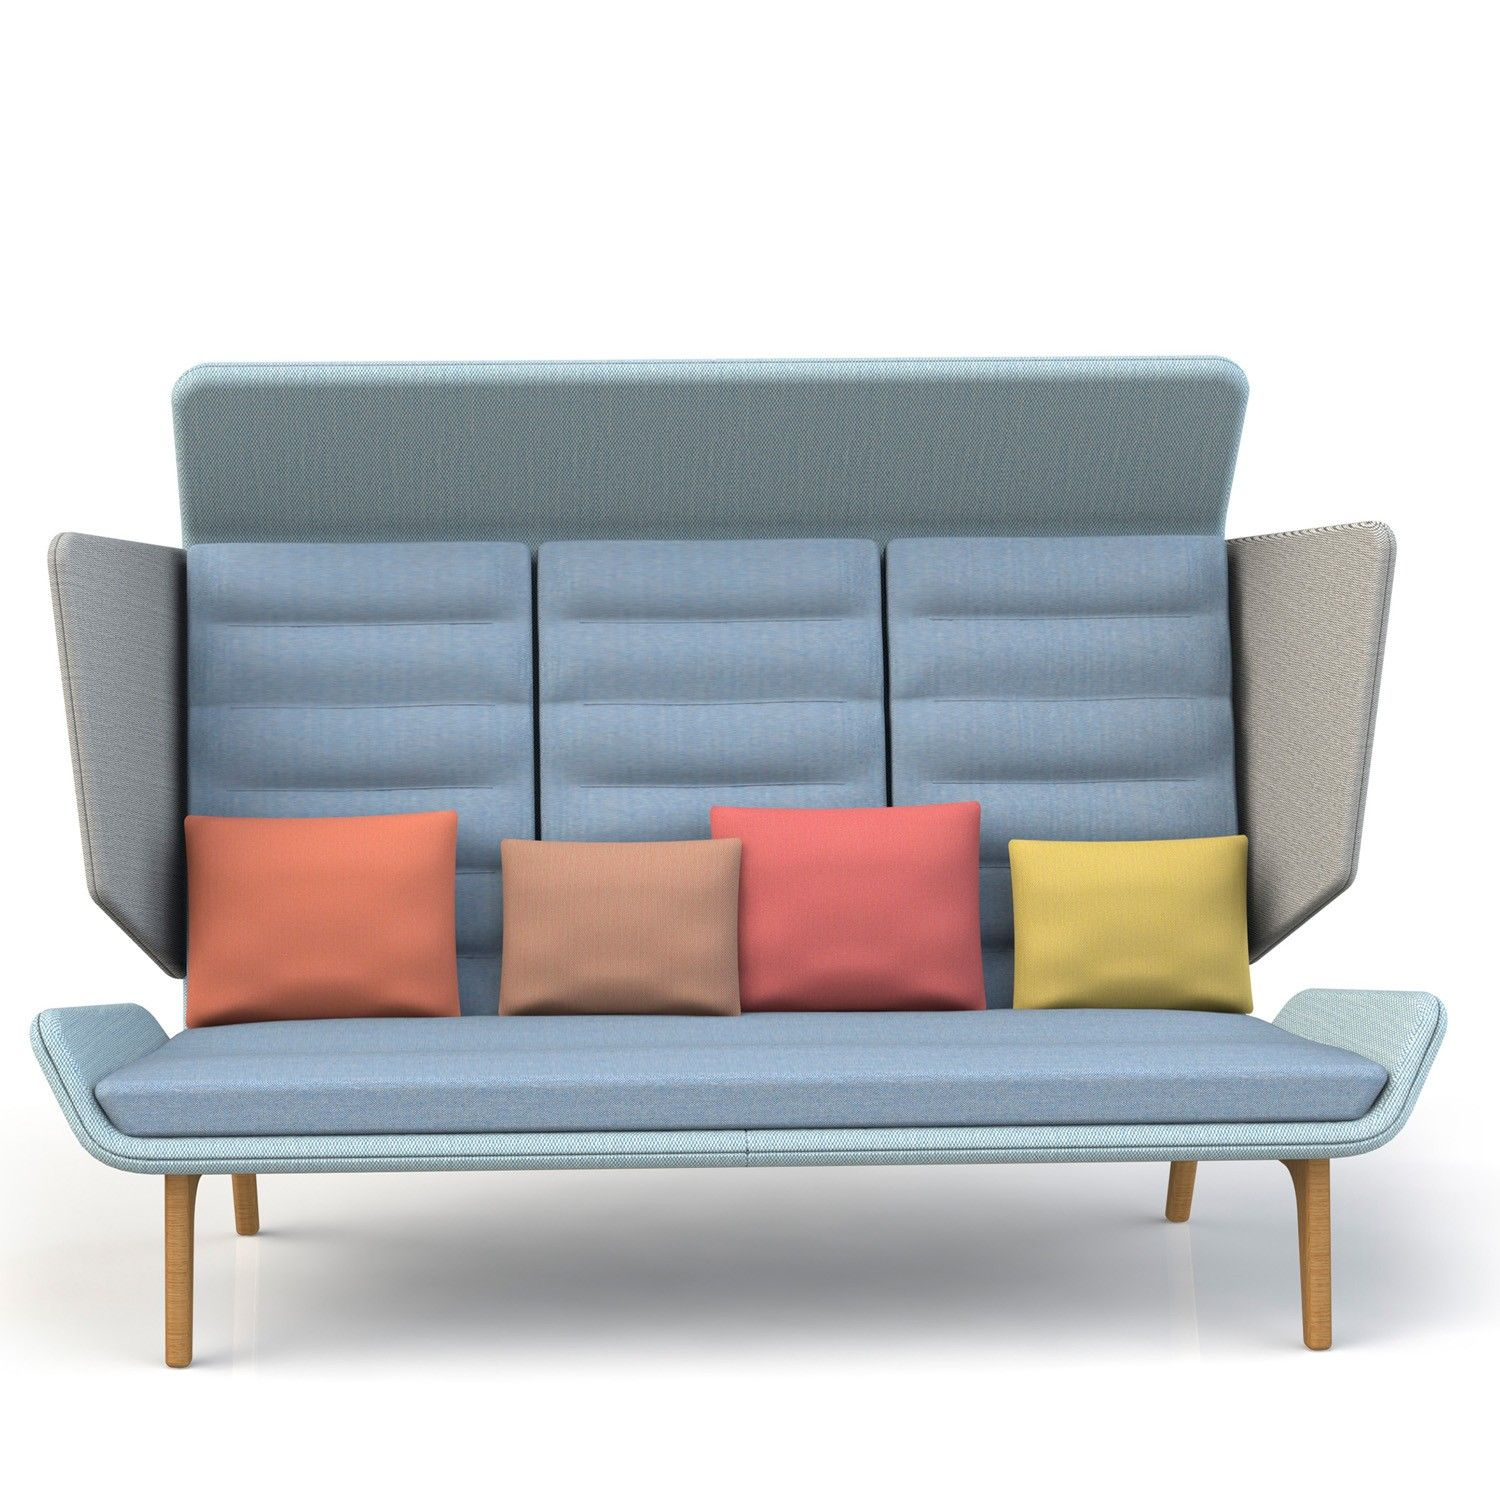 Aden High Back Sofa Provides Offices With Informal Soft Seating Solutions For Small Groups When Privacy Is Required S Design Has